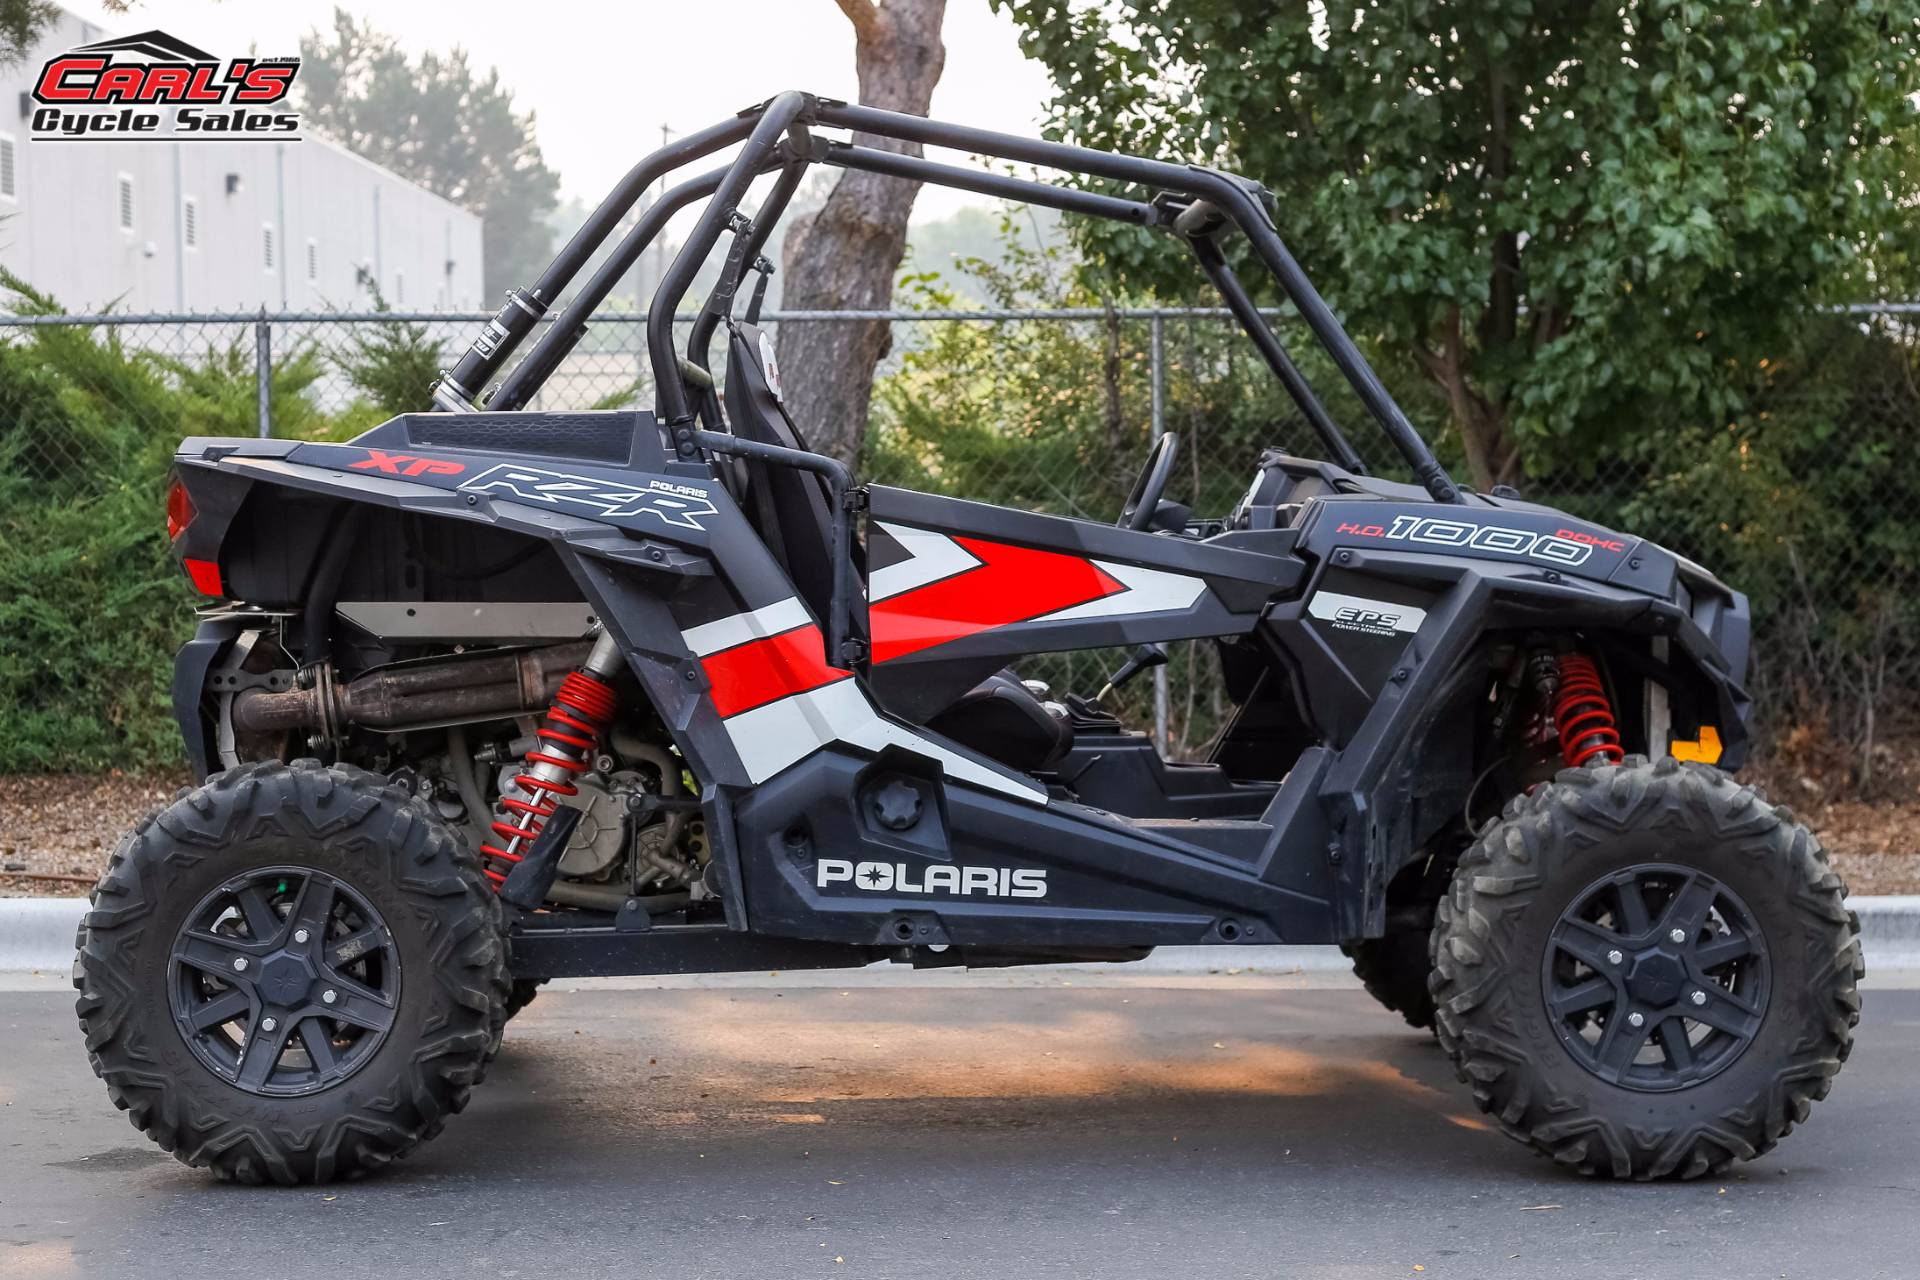 2015 Polaris RZR XP 1000 EPS 5